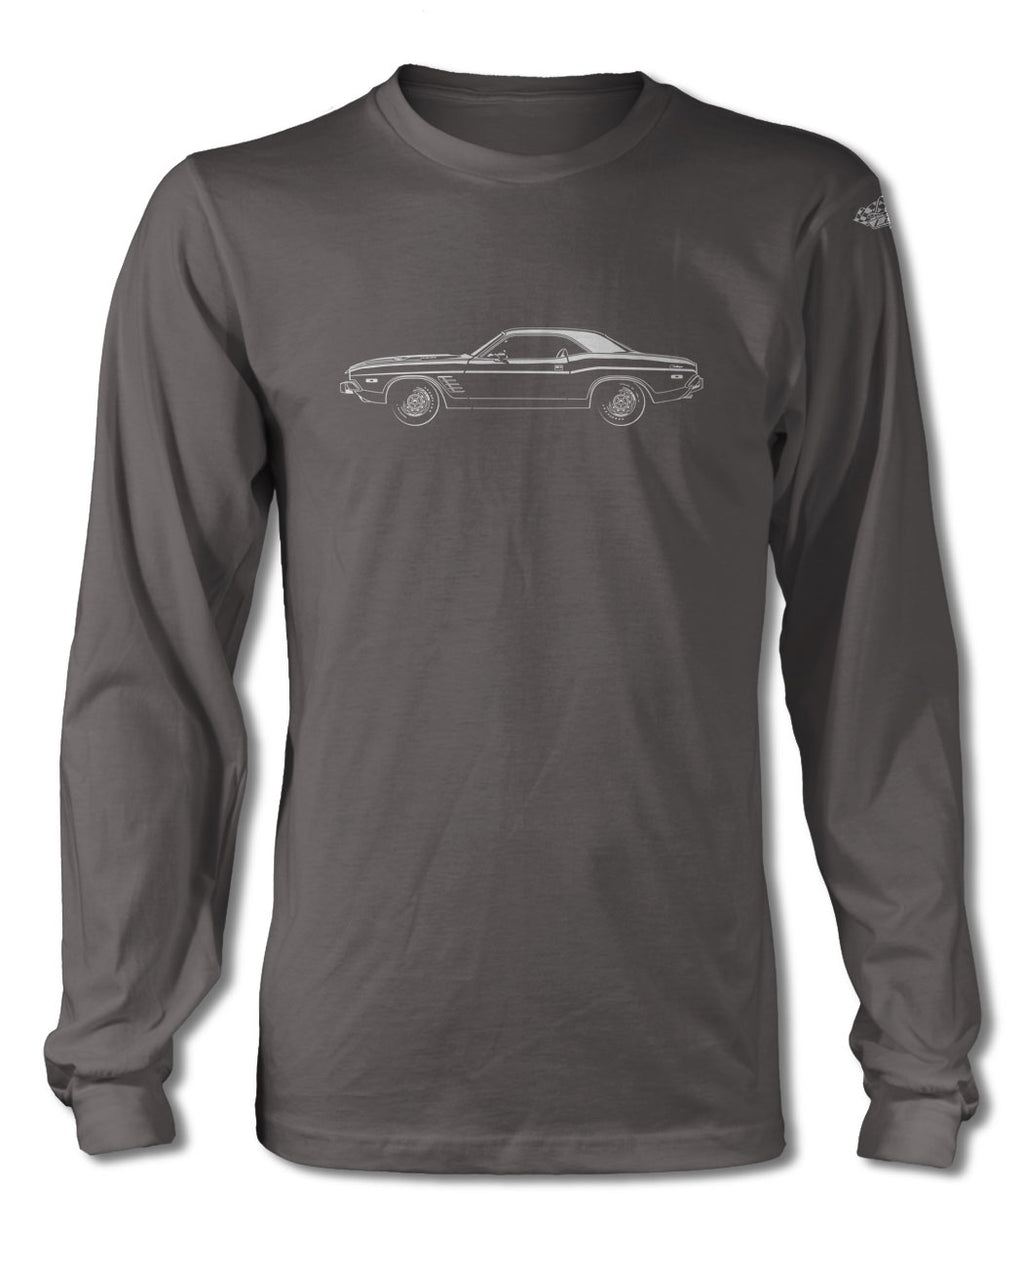 1973 Dodge Challenger Rallye Coupe T-Shirt - Long Sleeves - Side View